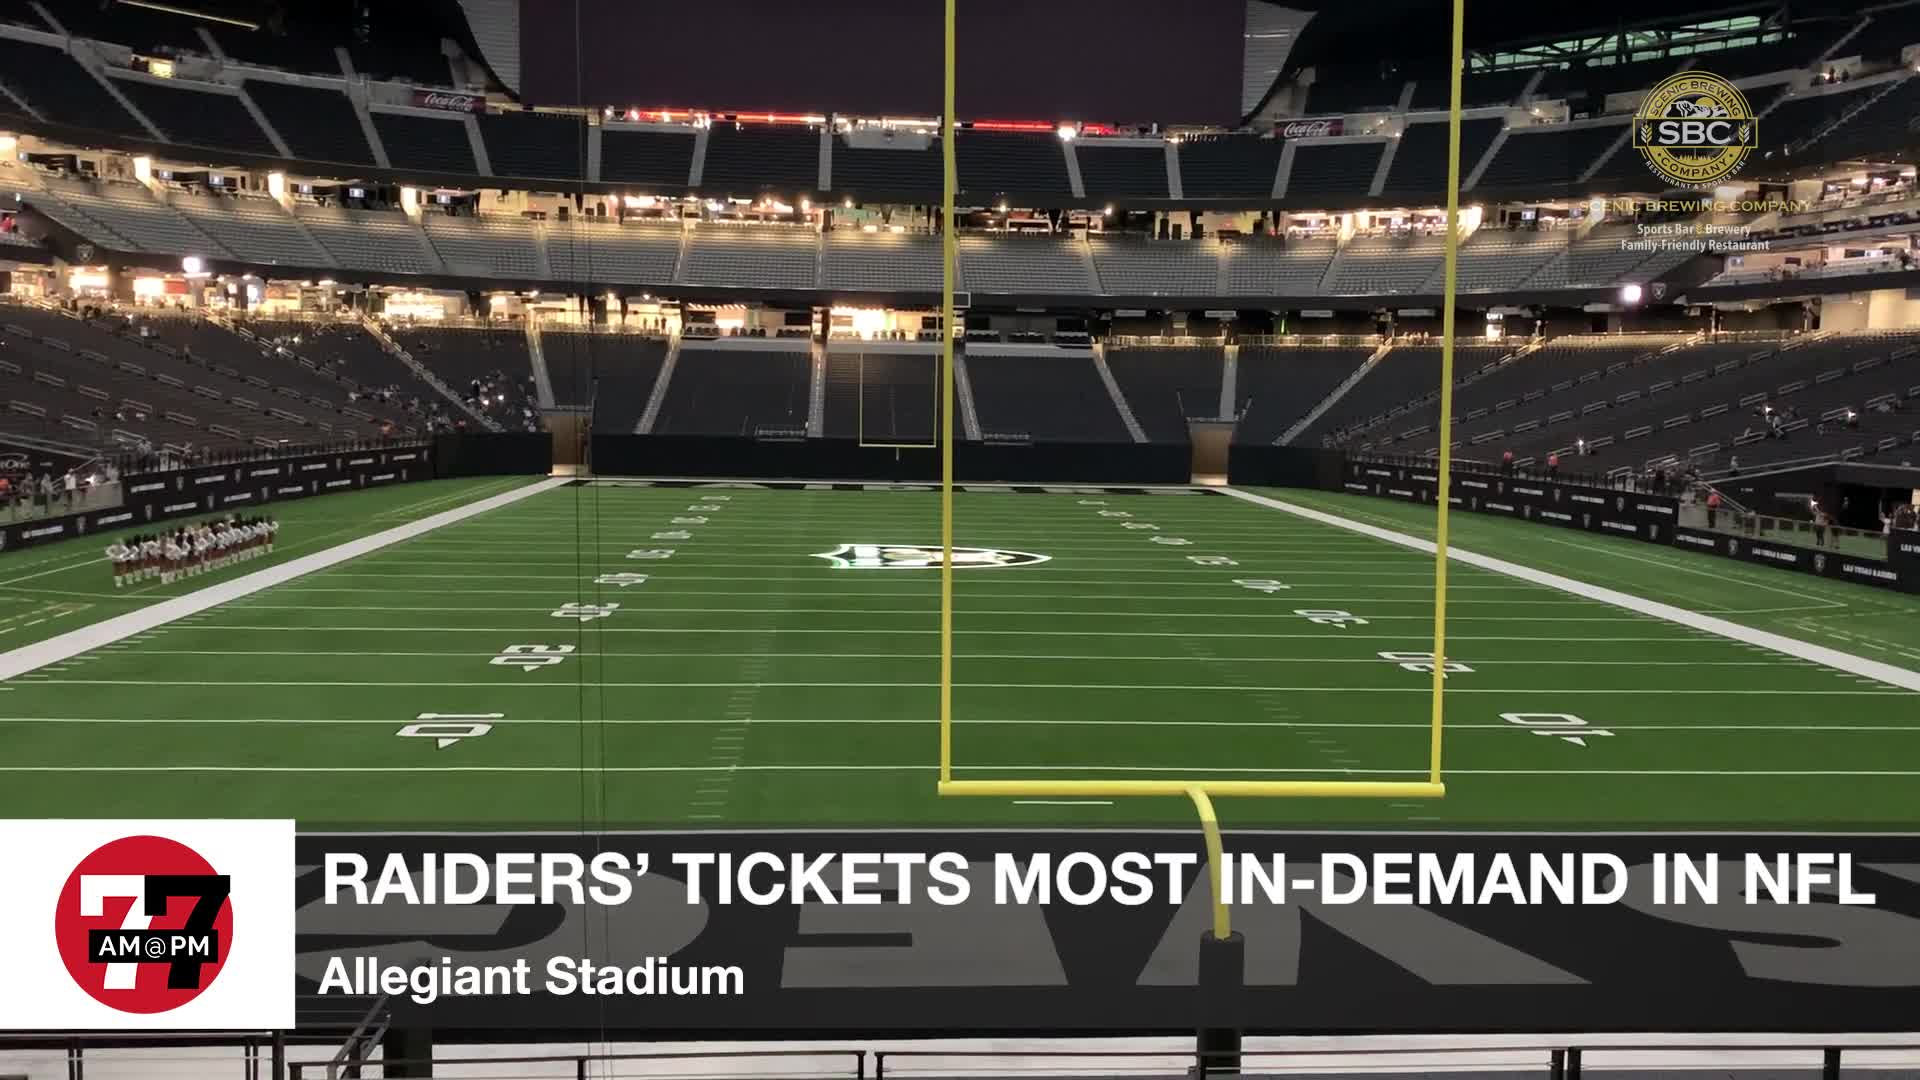 7@7PM Raiders' Tickets Most In-Demand in NFL